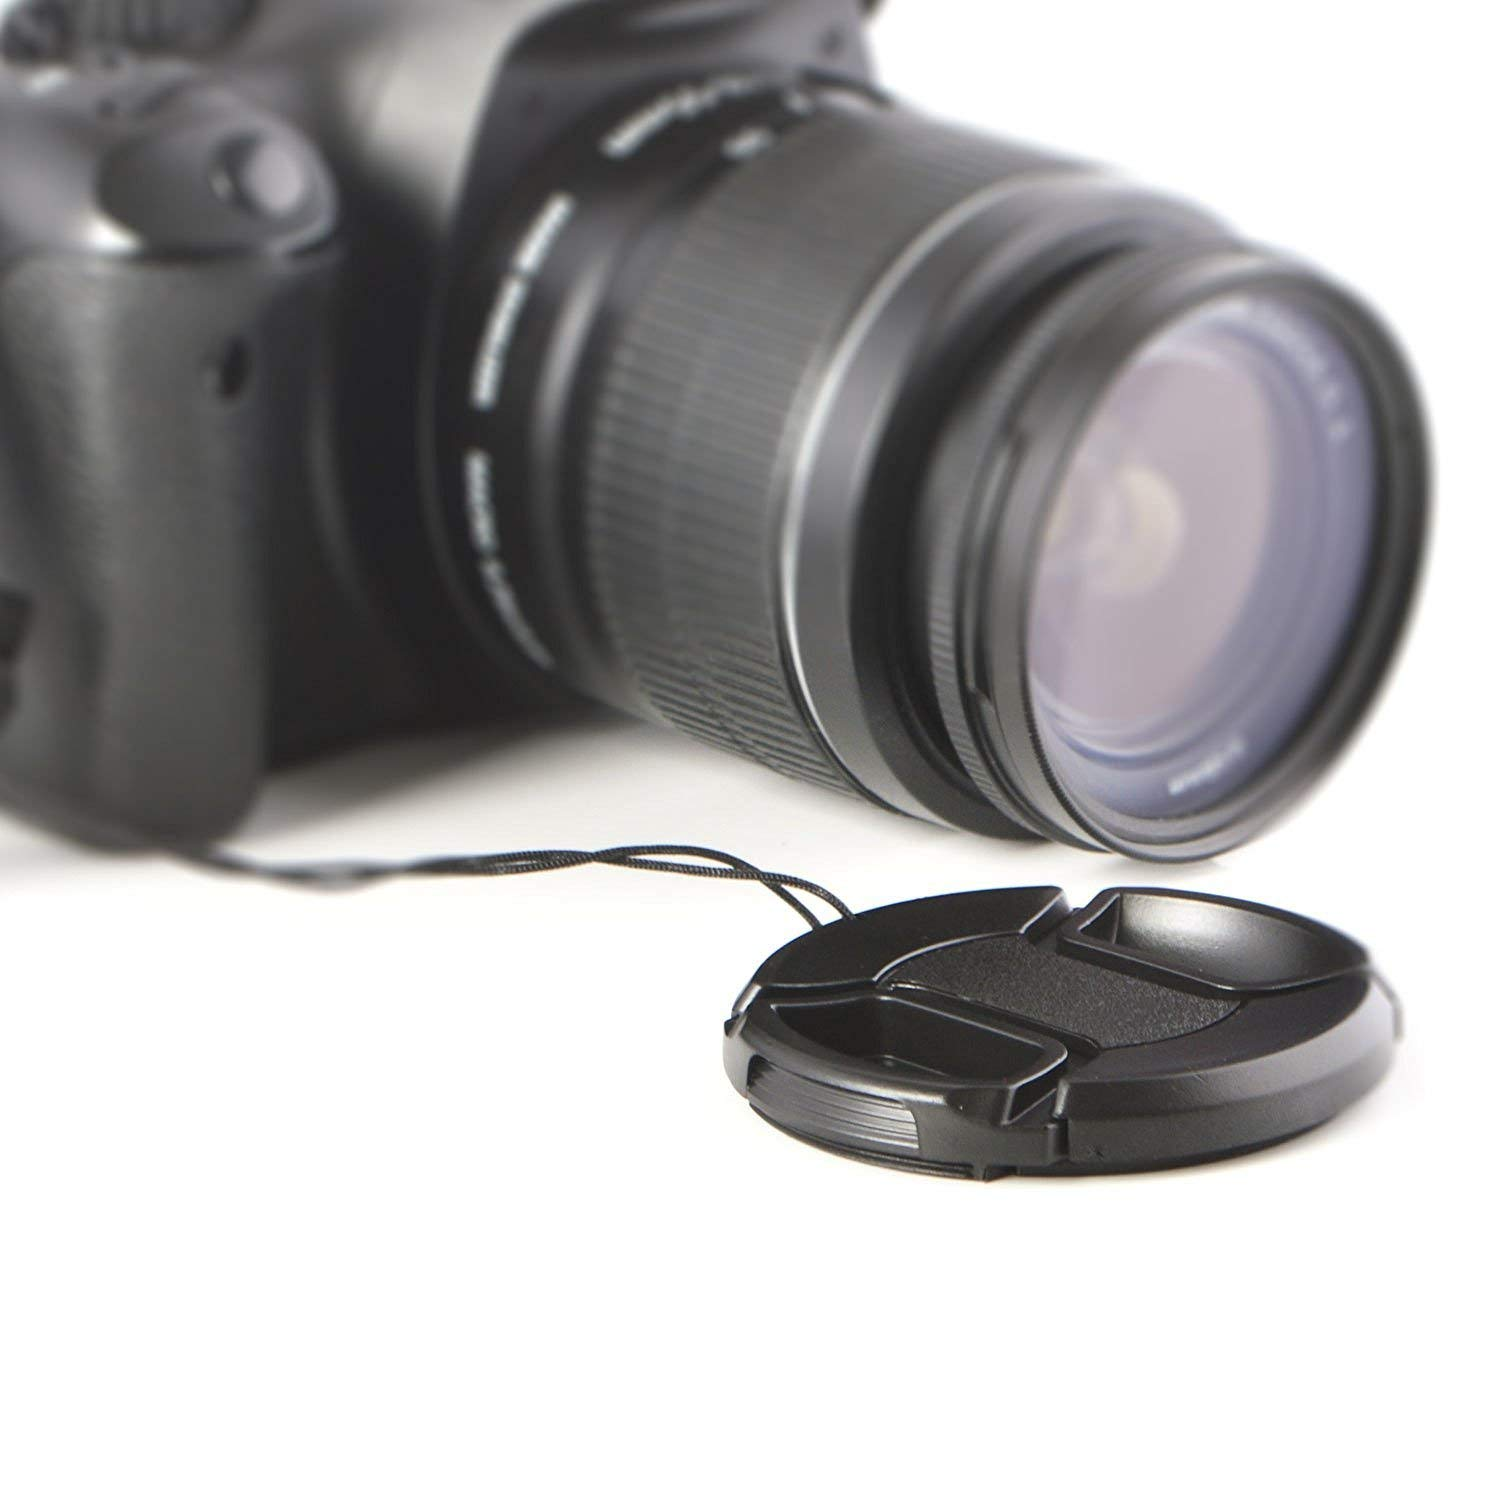 Pack of 4 Pack of 2 77 mm Lens Cap with Front Closure Clip for 77 mm Diameter Lens Compatible with All Cameras